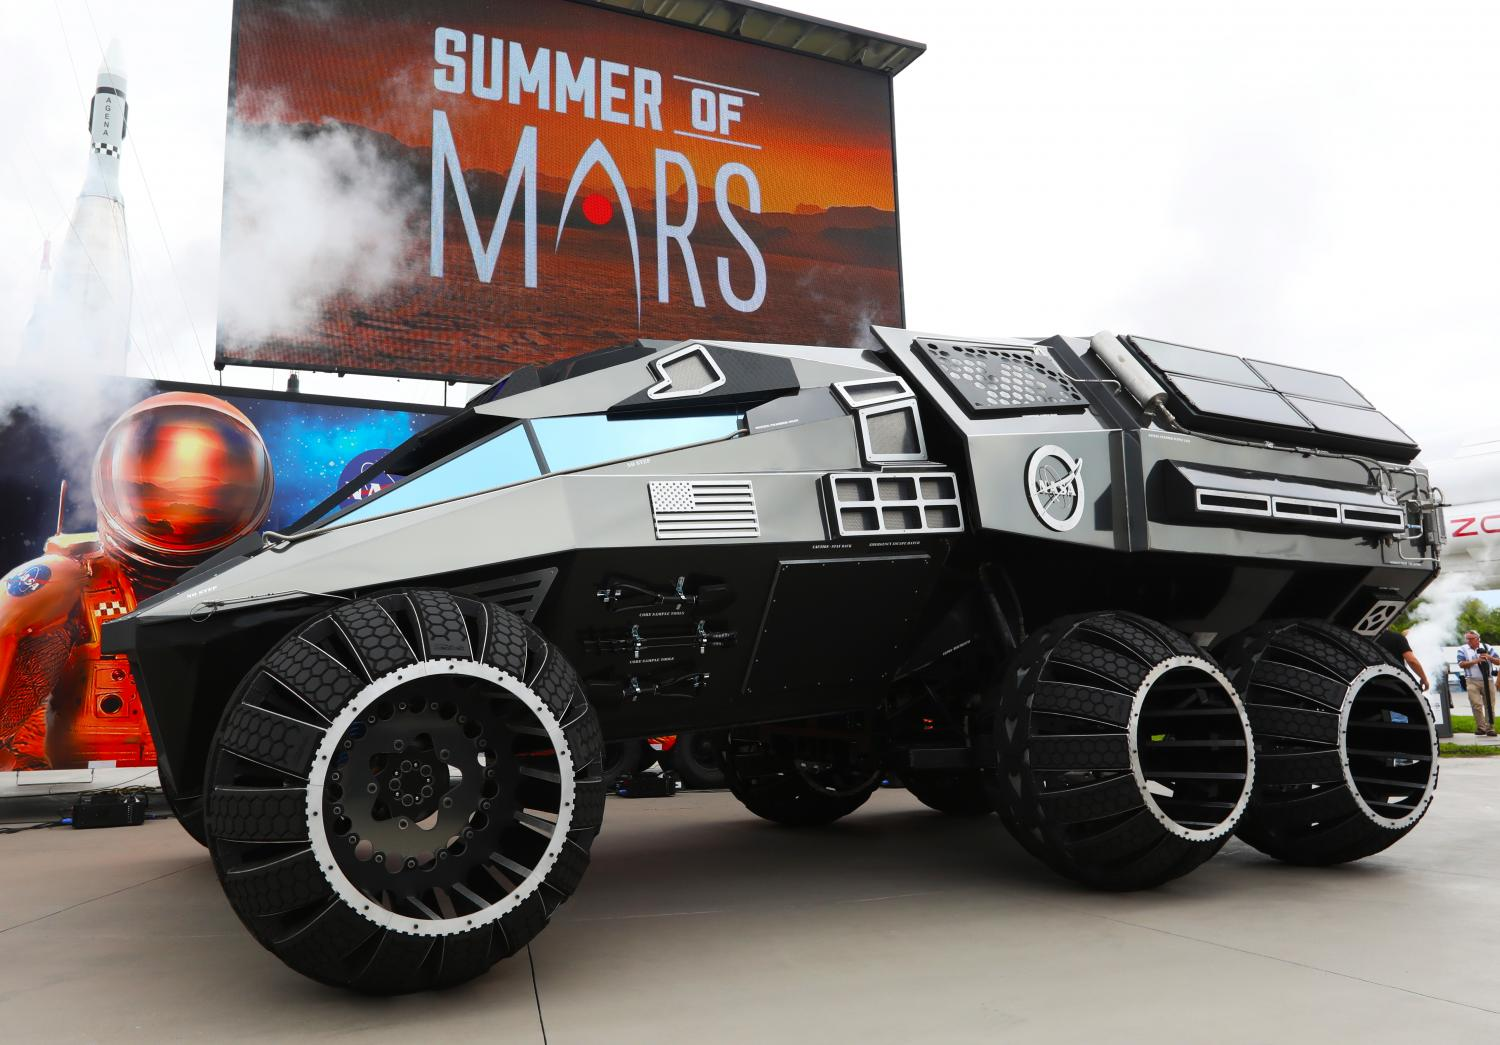 new mars exploration rover - photo #28